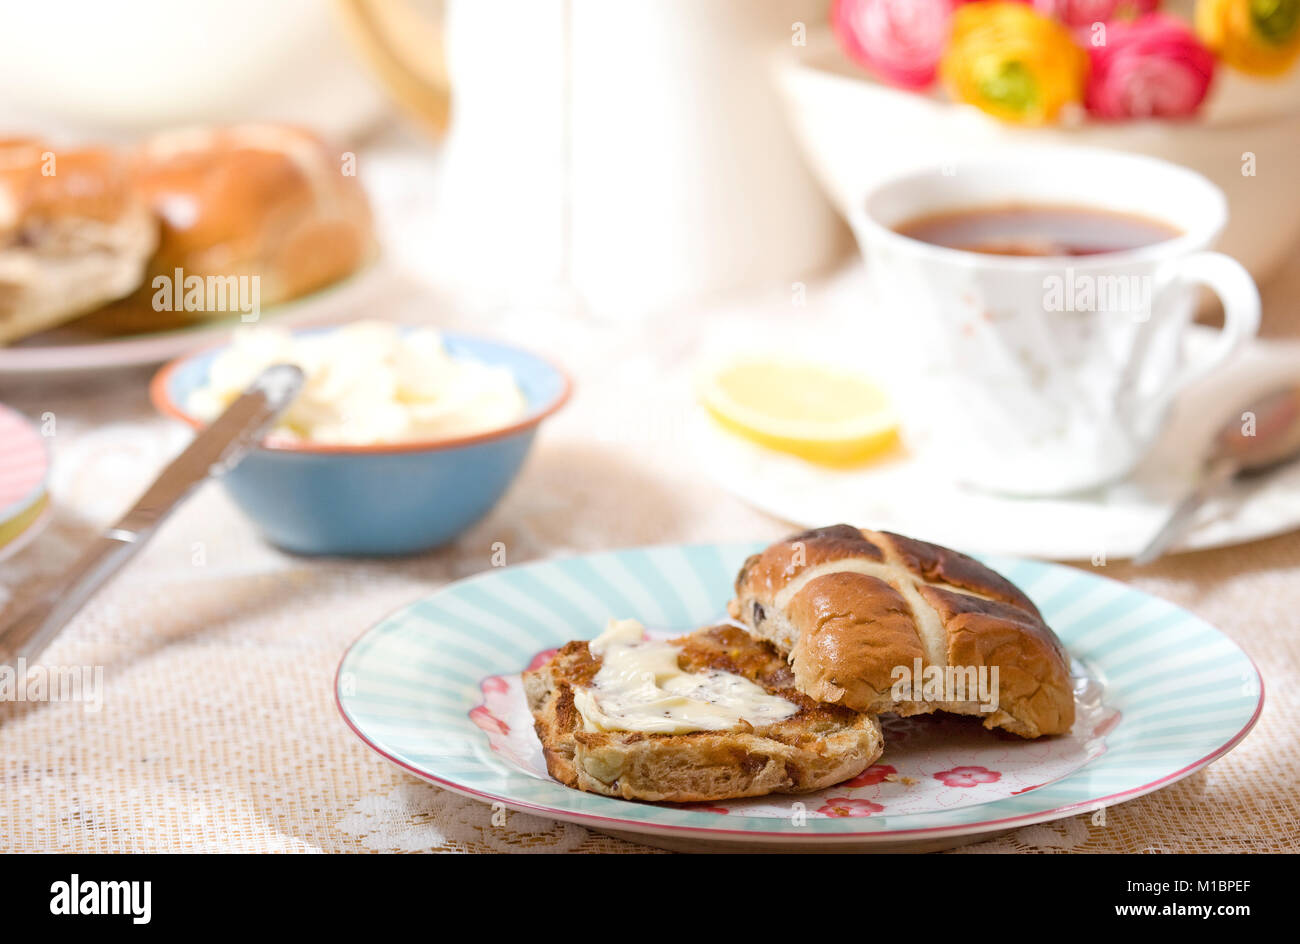 fresh hot cross bun with melted butter - Stock Image